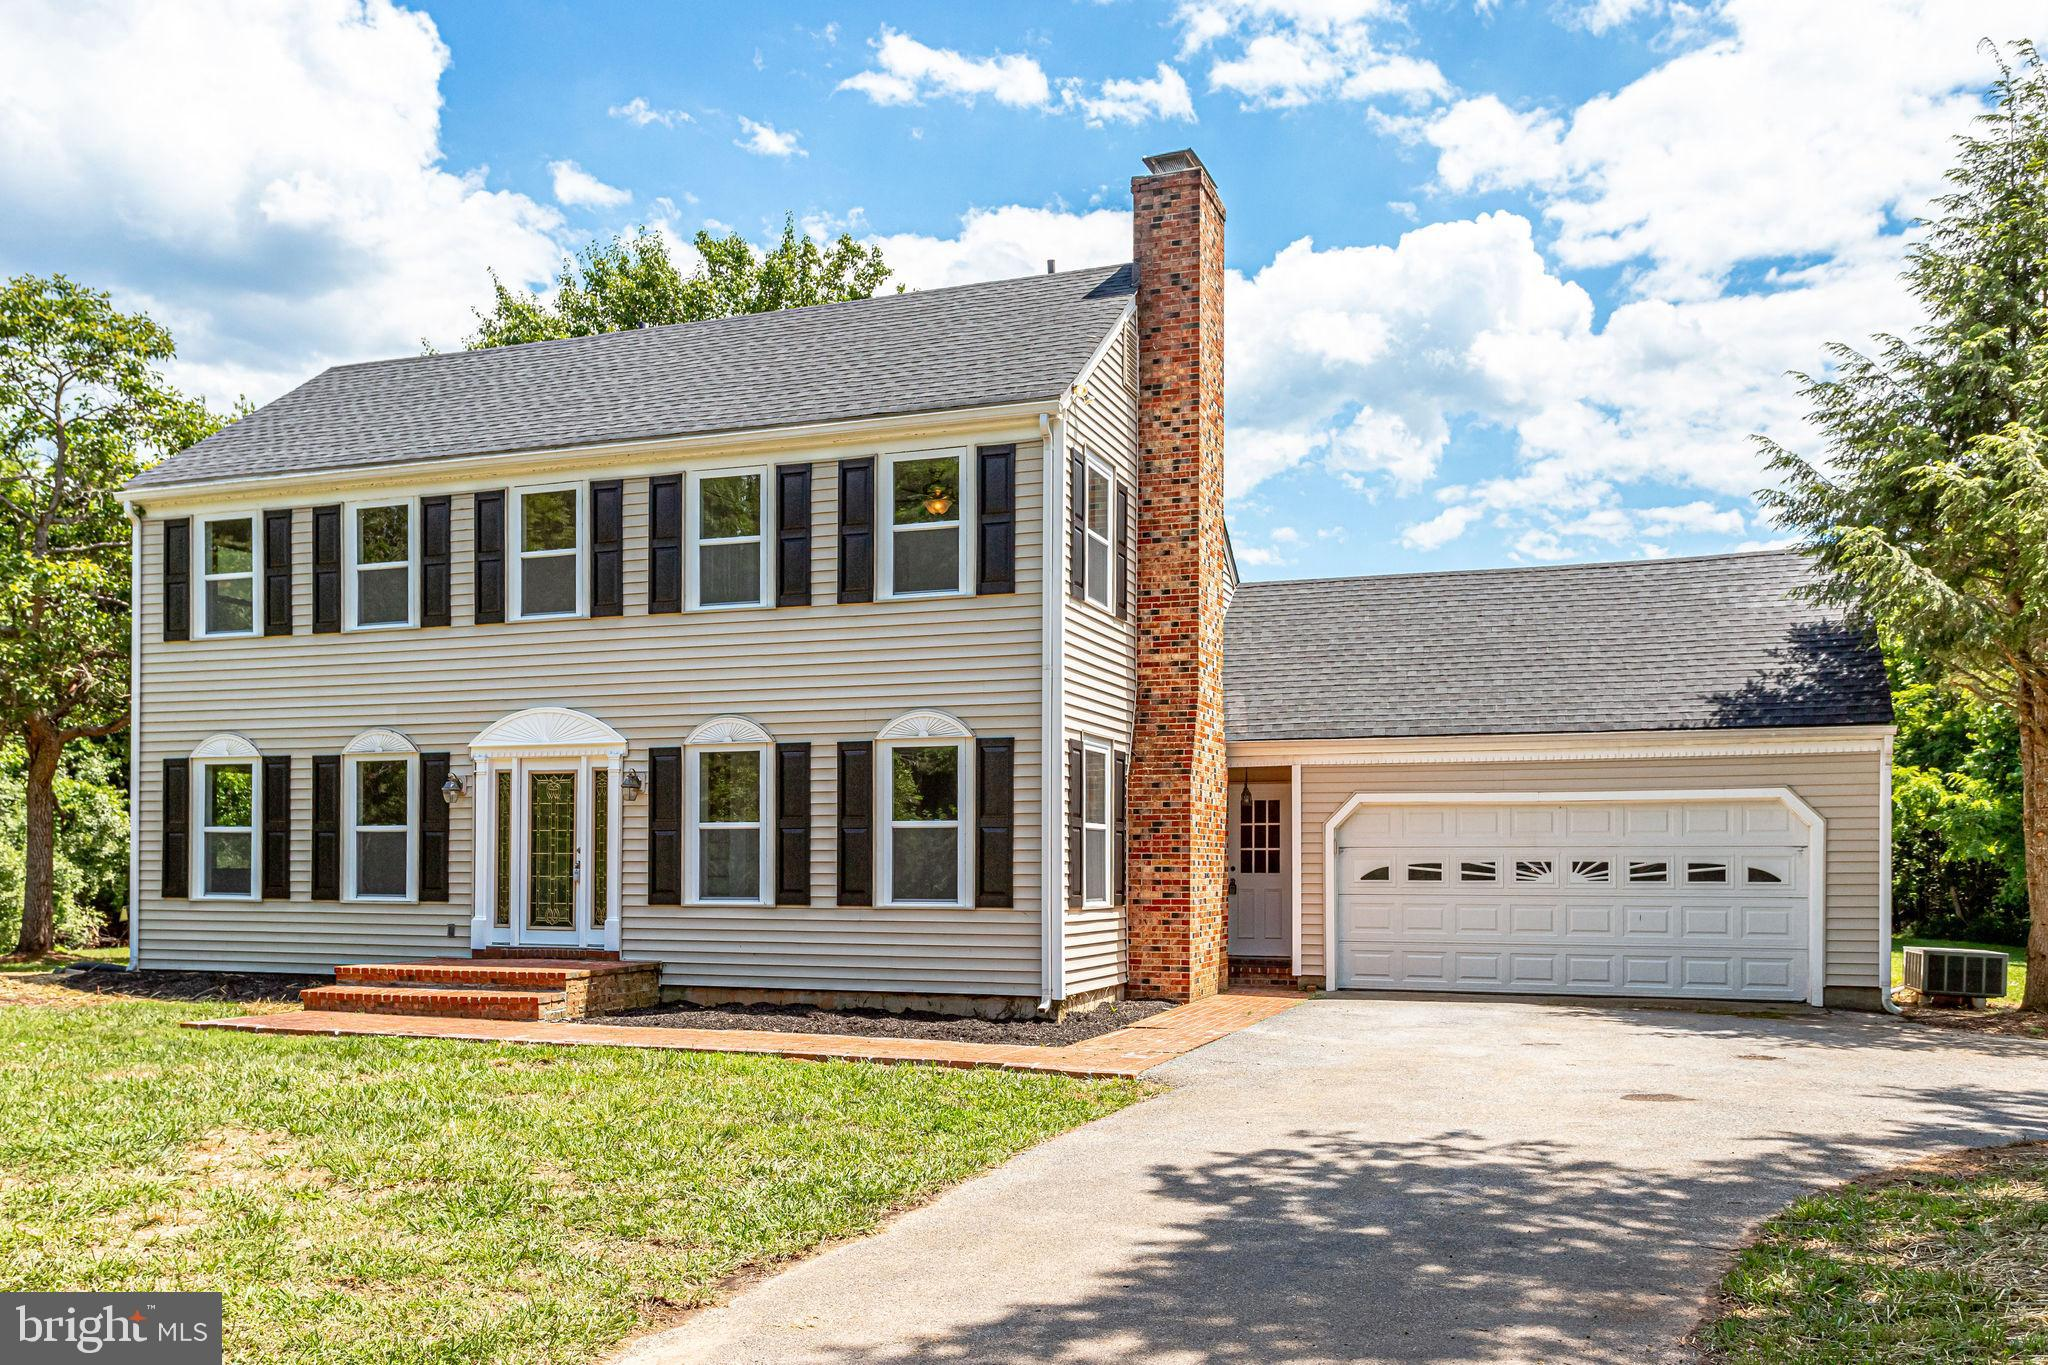 Tranquility awaits! Priced to move! Come see this newly remodeled 2 story colonial home set on 6+ ac